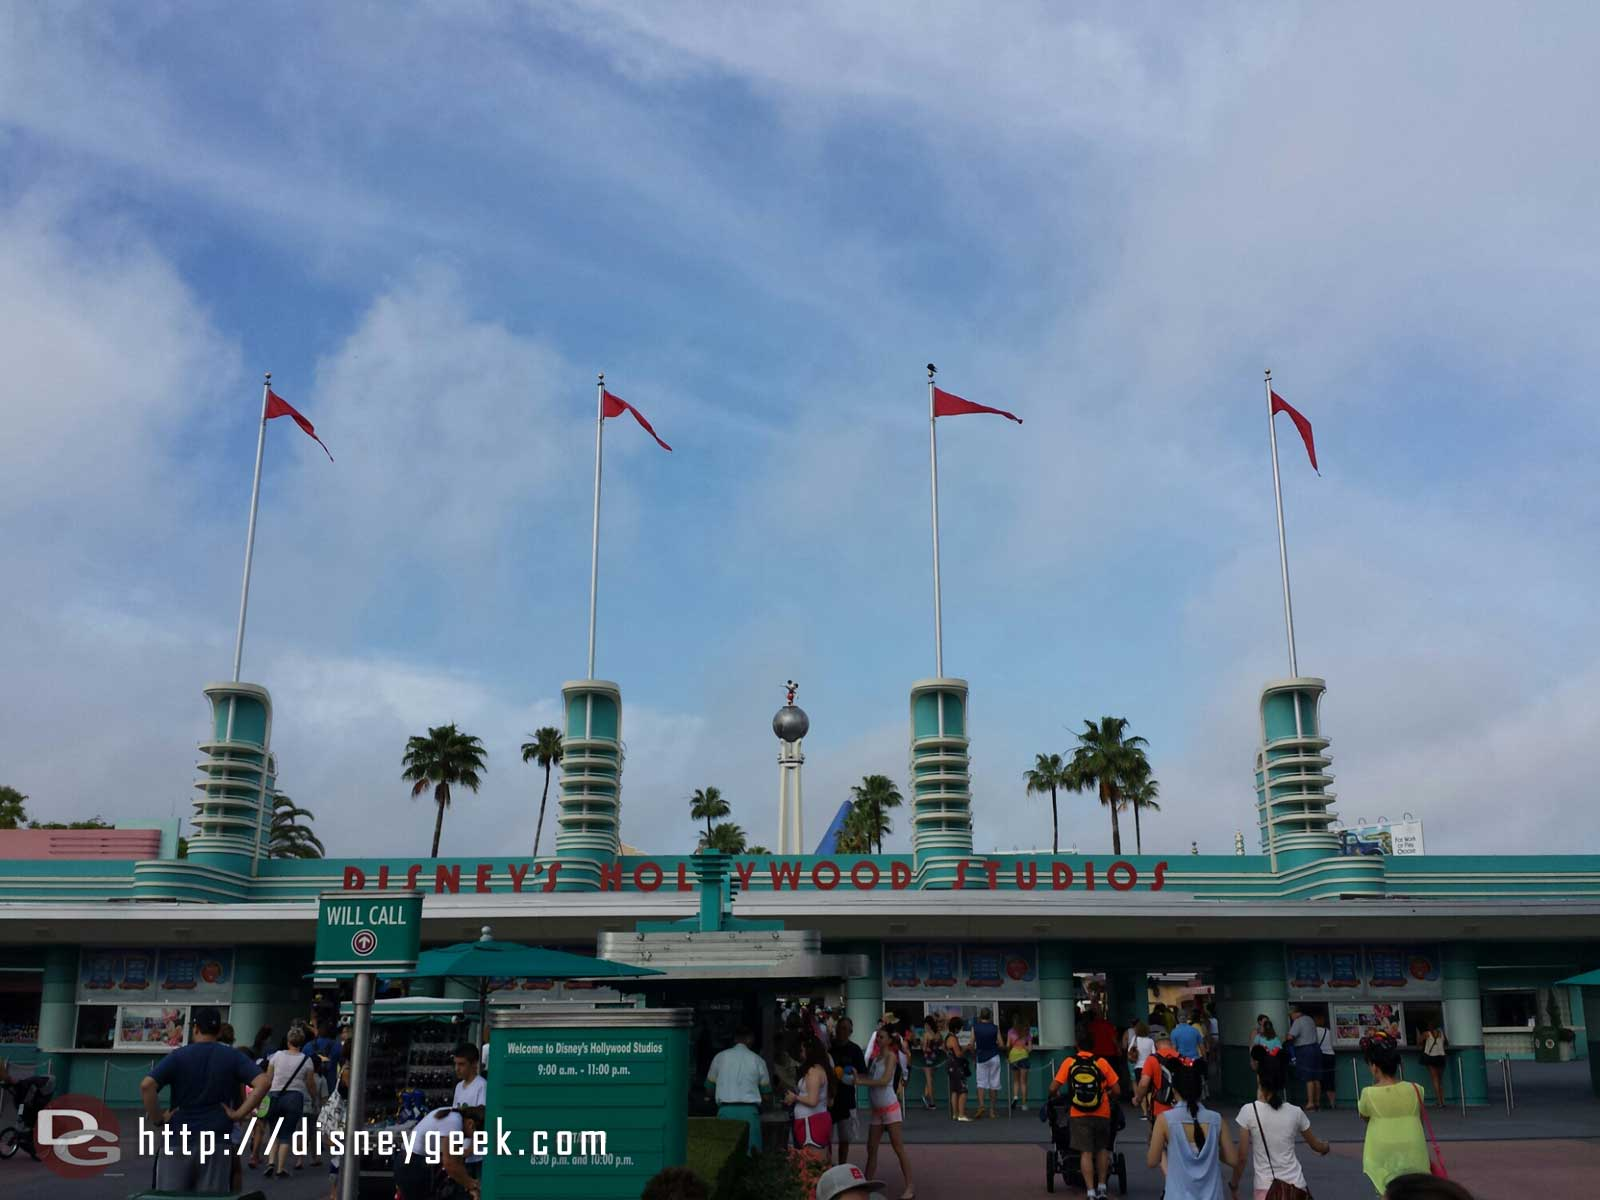 Arriving at Disney's Hollywood Studios themepark